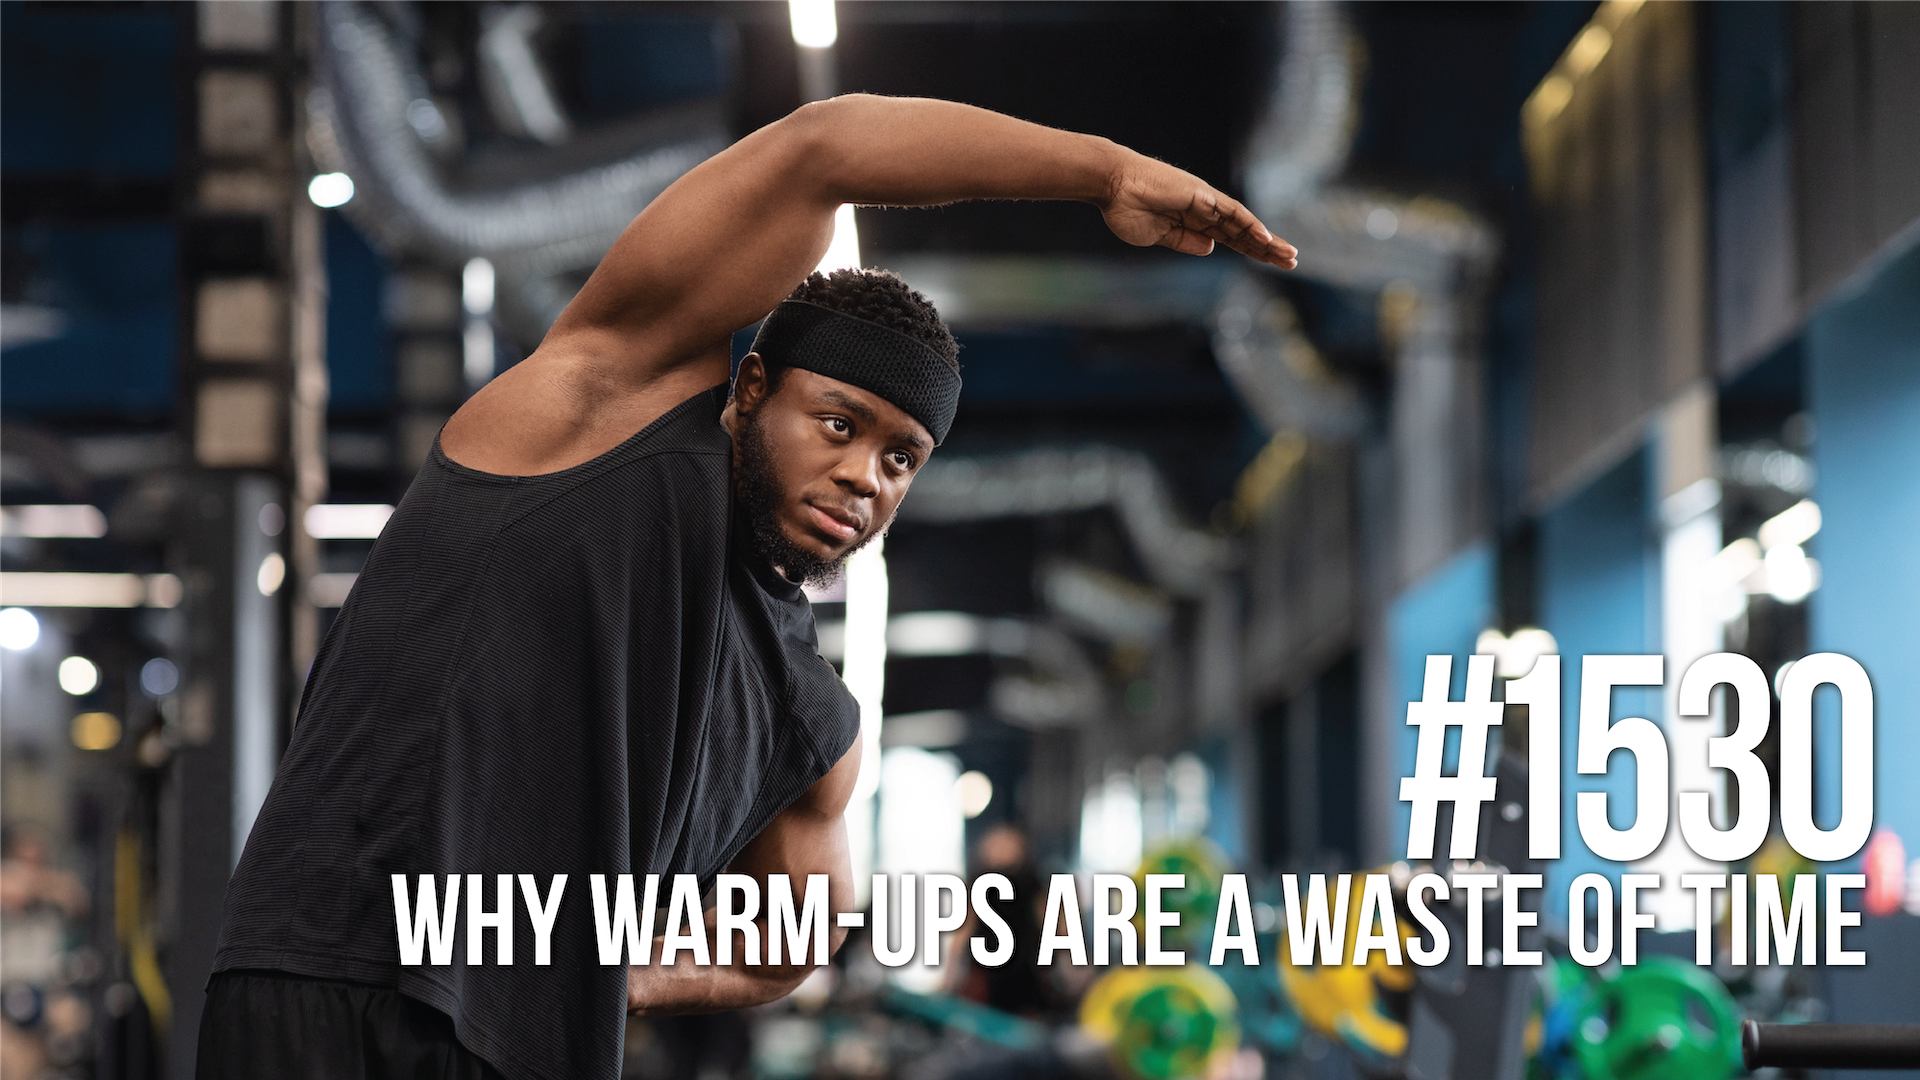 1530: Why Warm-Ups Are a Waste of Time